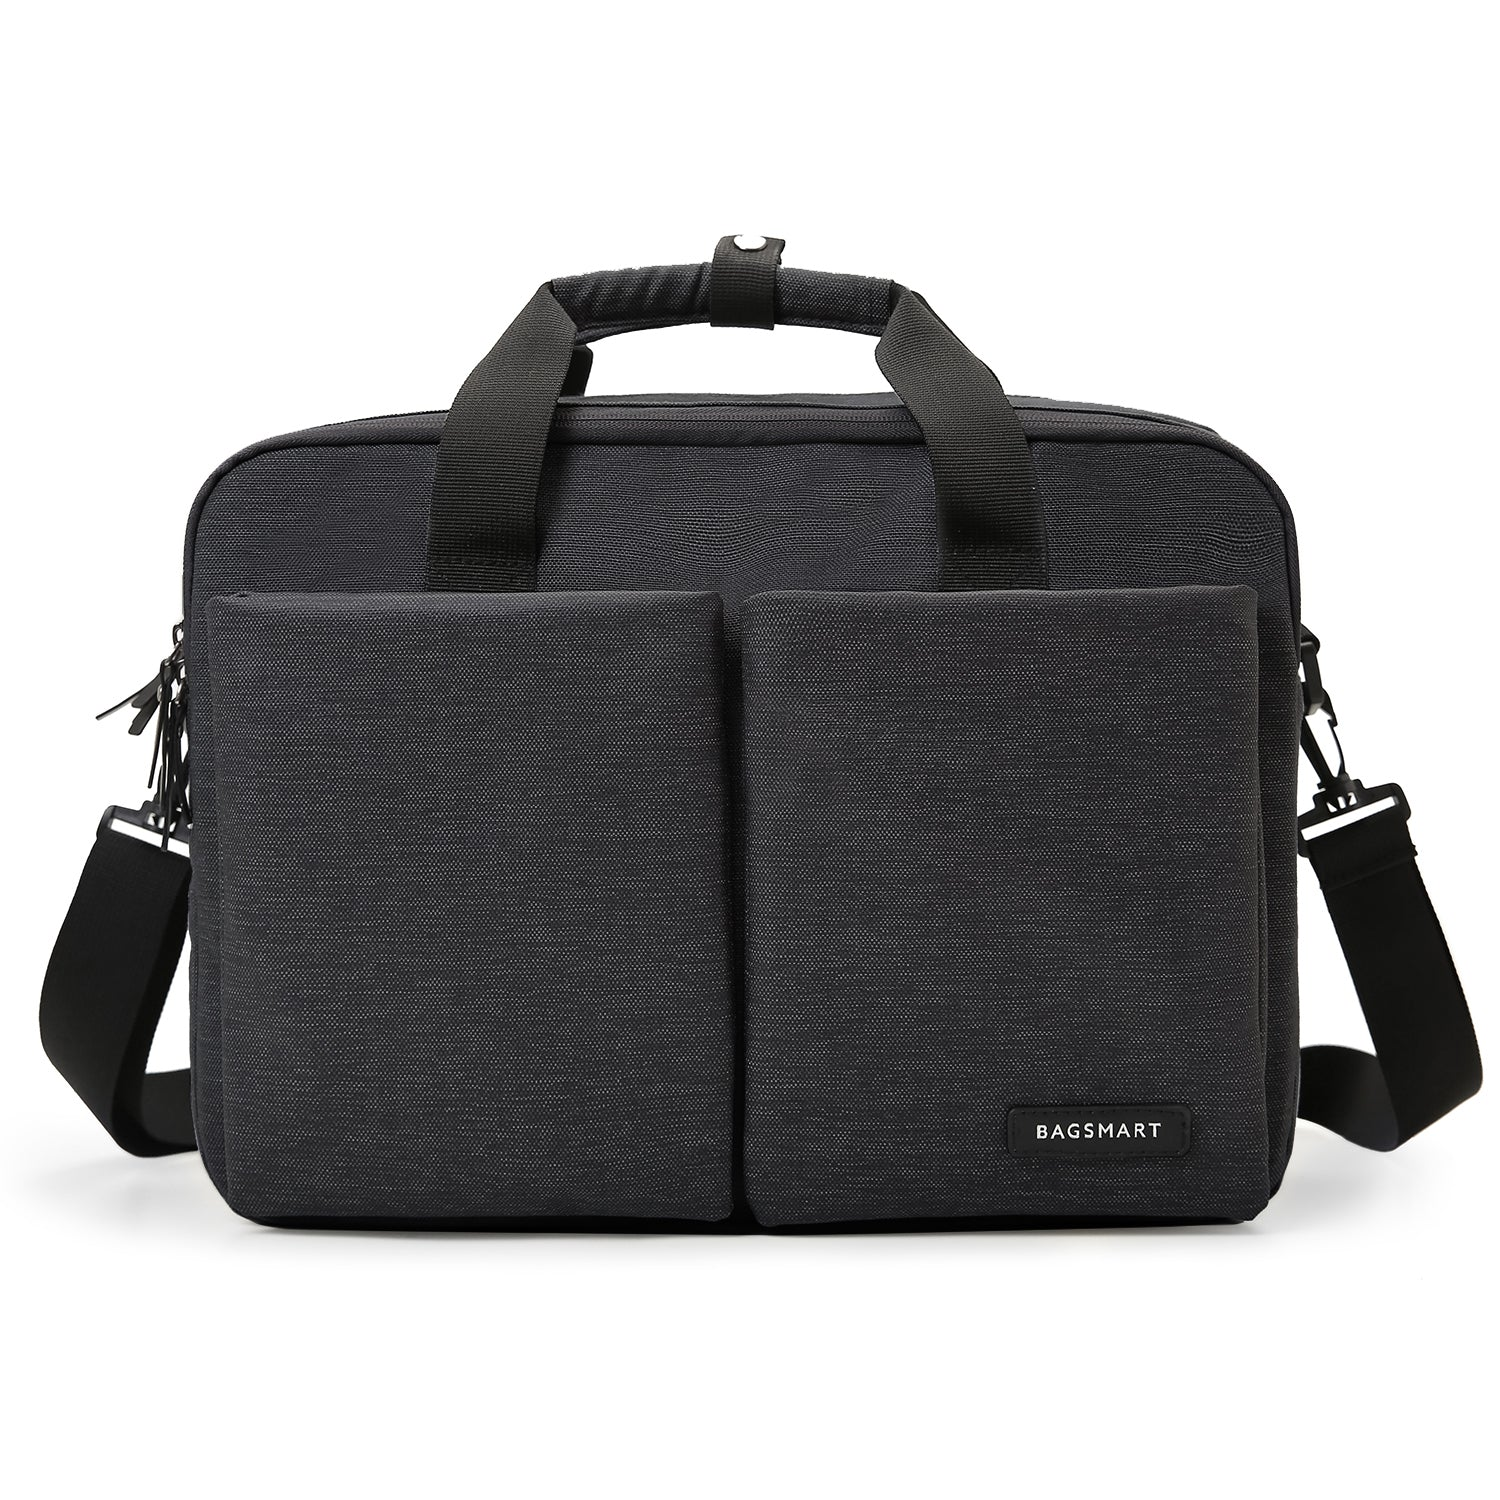 28e83eb5bf 15.6 inch Laptop Briefcase Water-Repellent Light Weight Computer Bag  Shoulder Expandable Extra Large Capacity